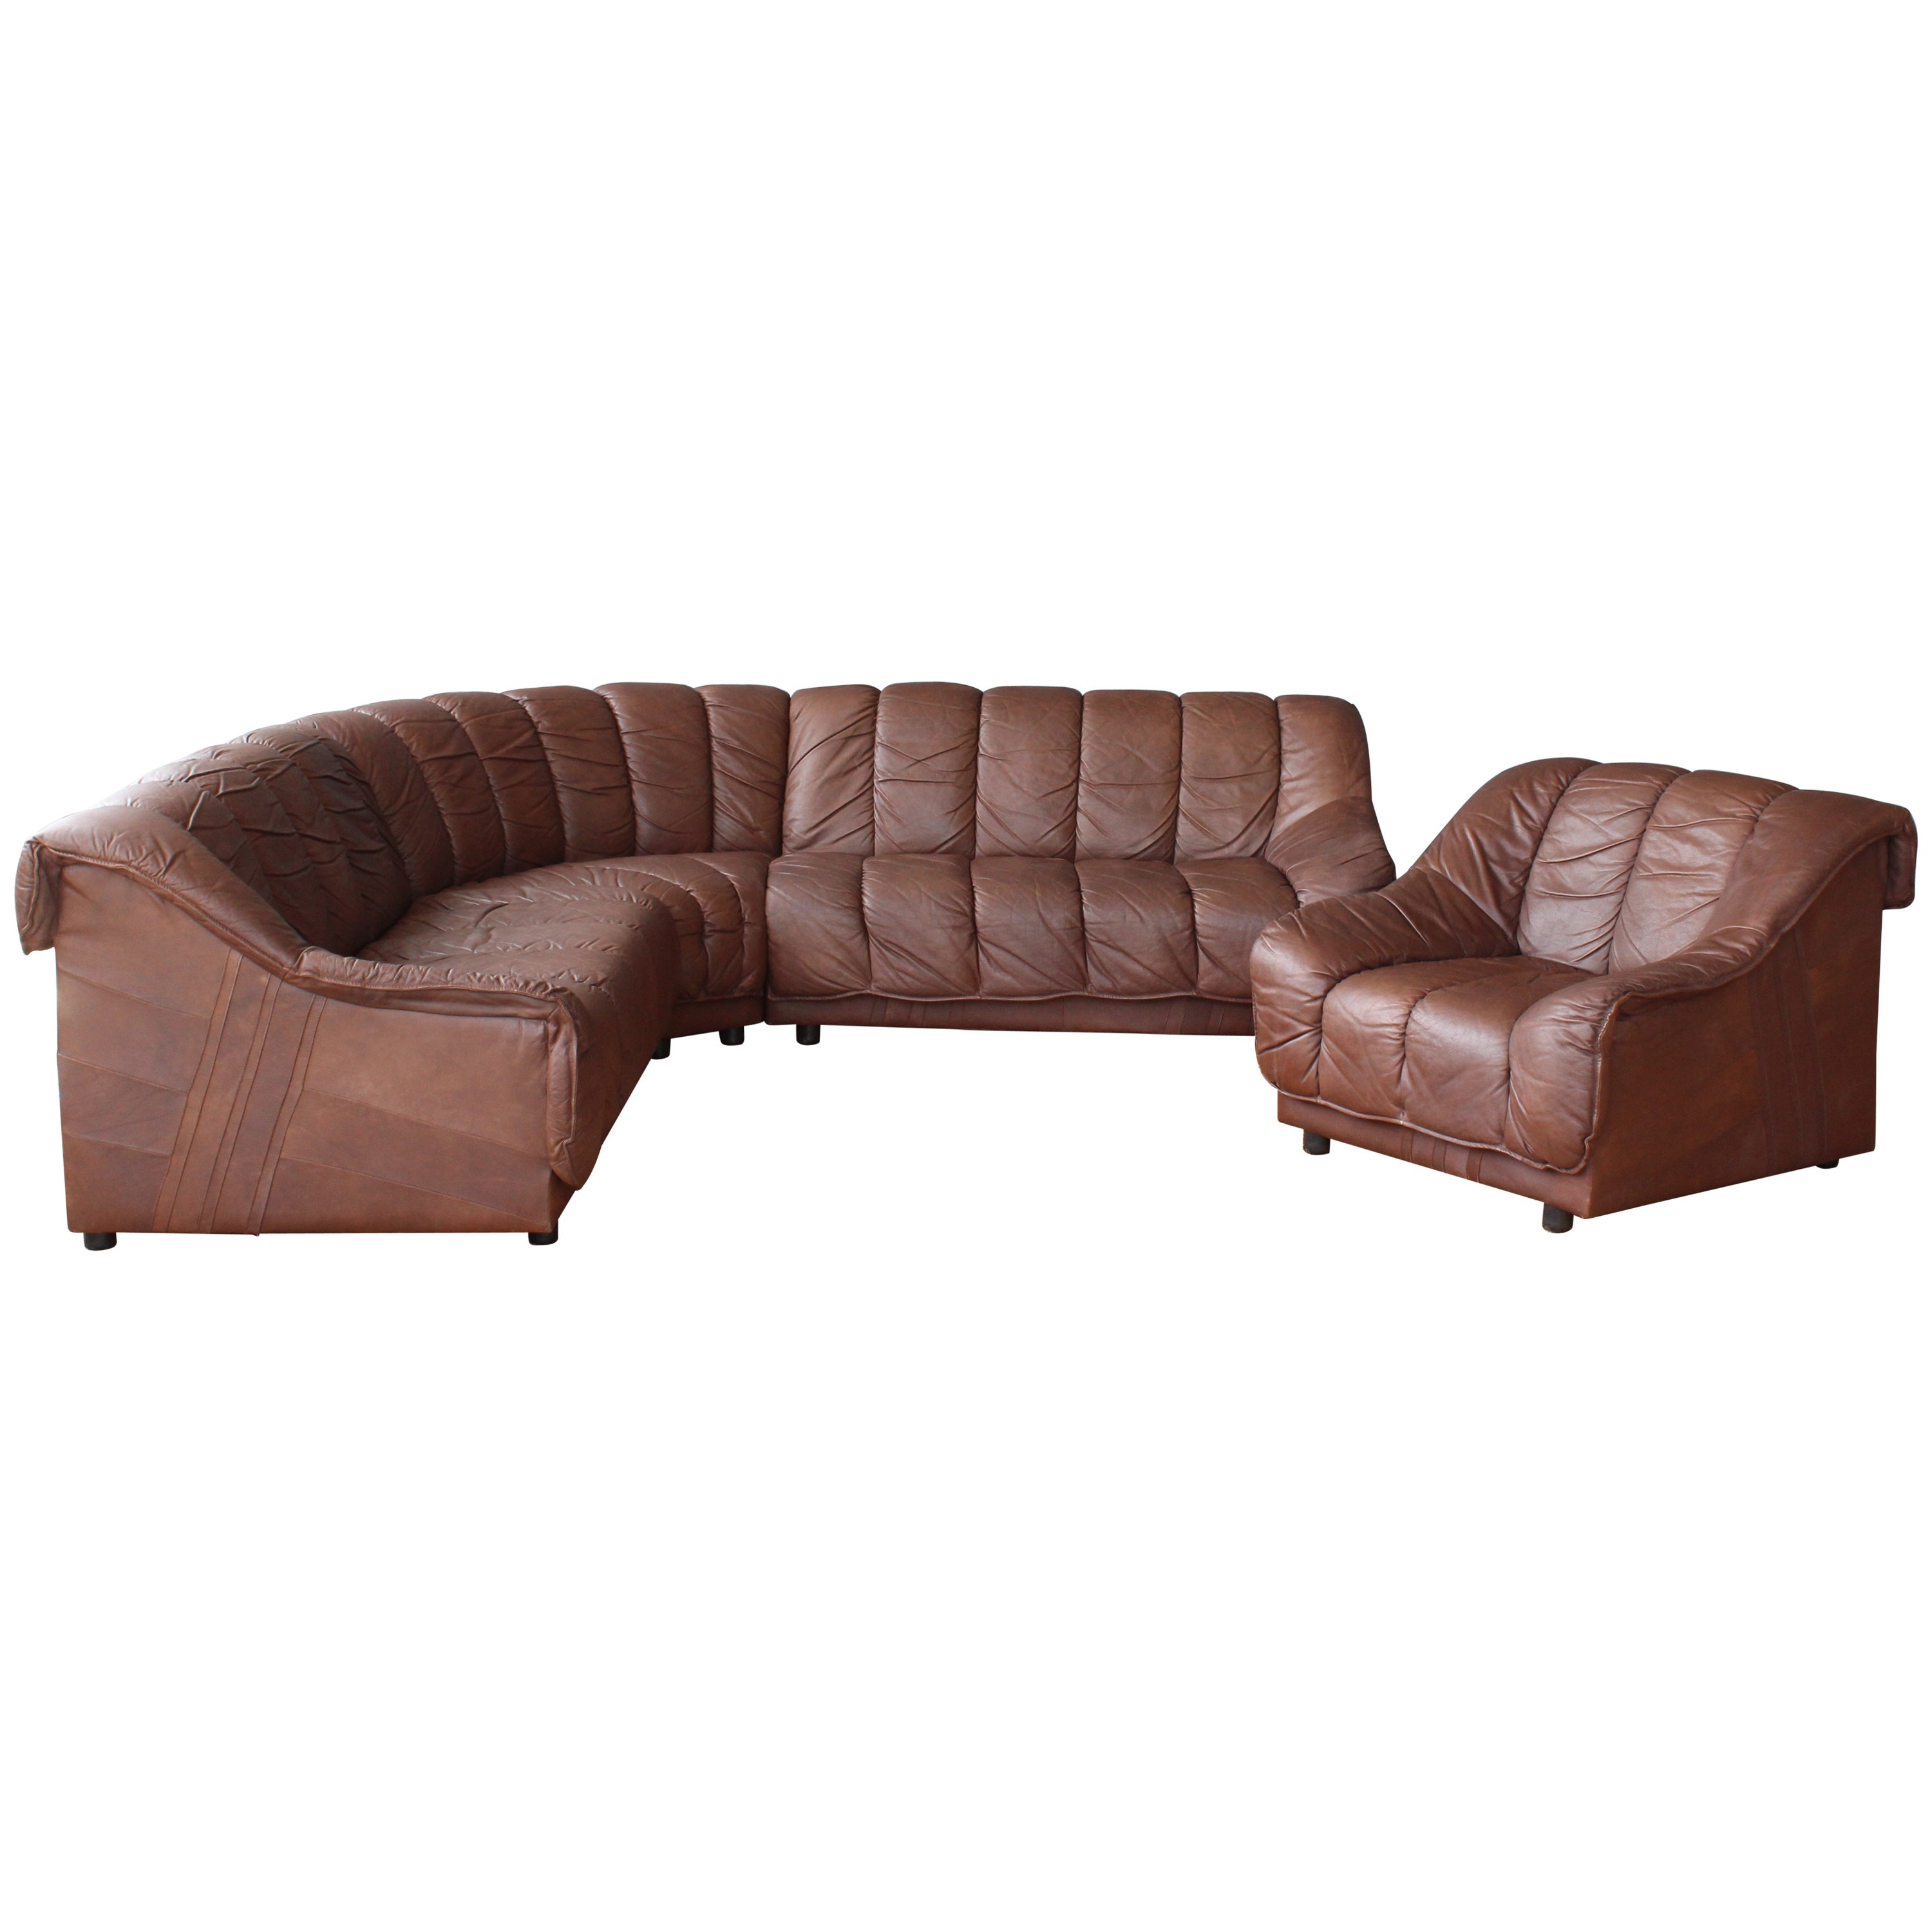 1970s Genuine Leather Sectional Sofa At 1stdibs